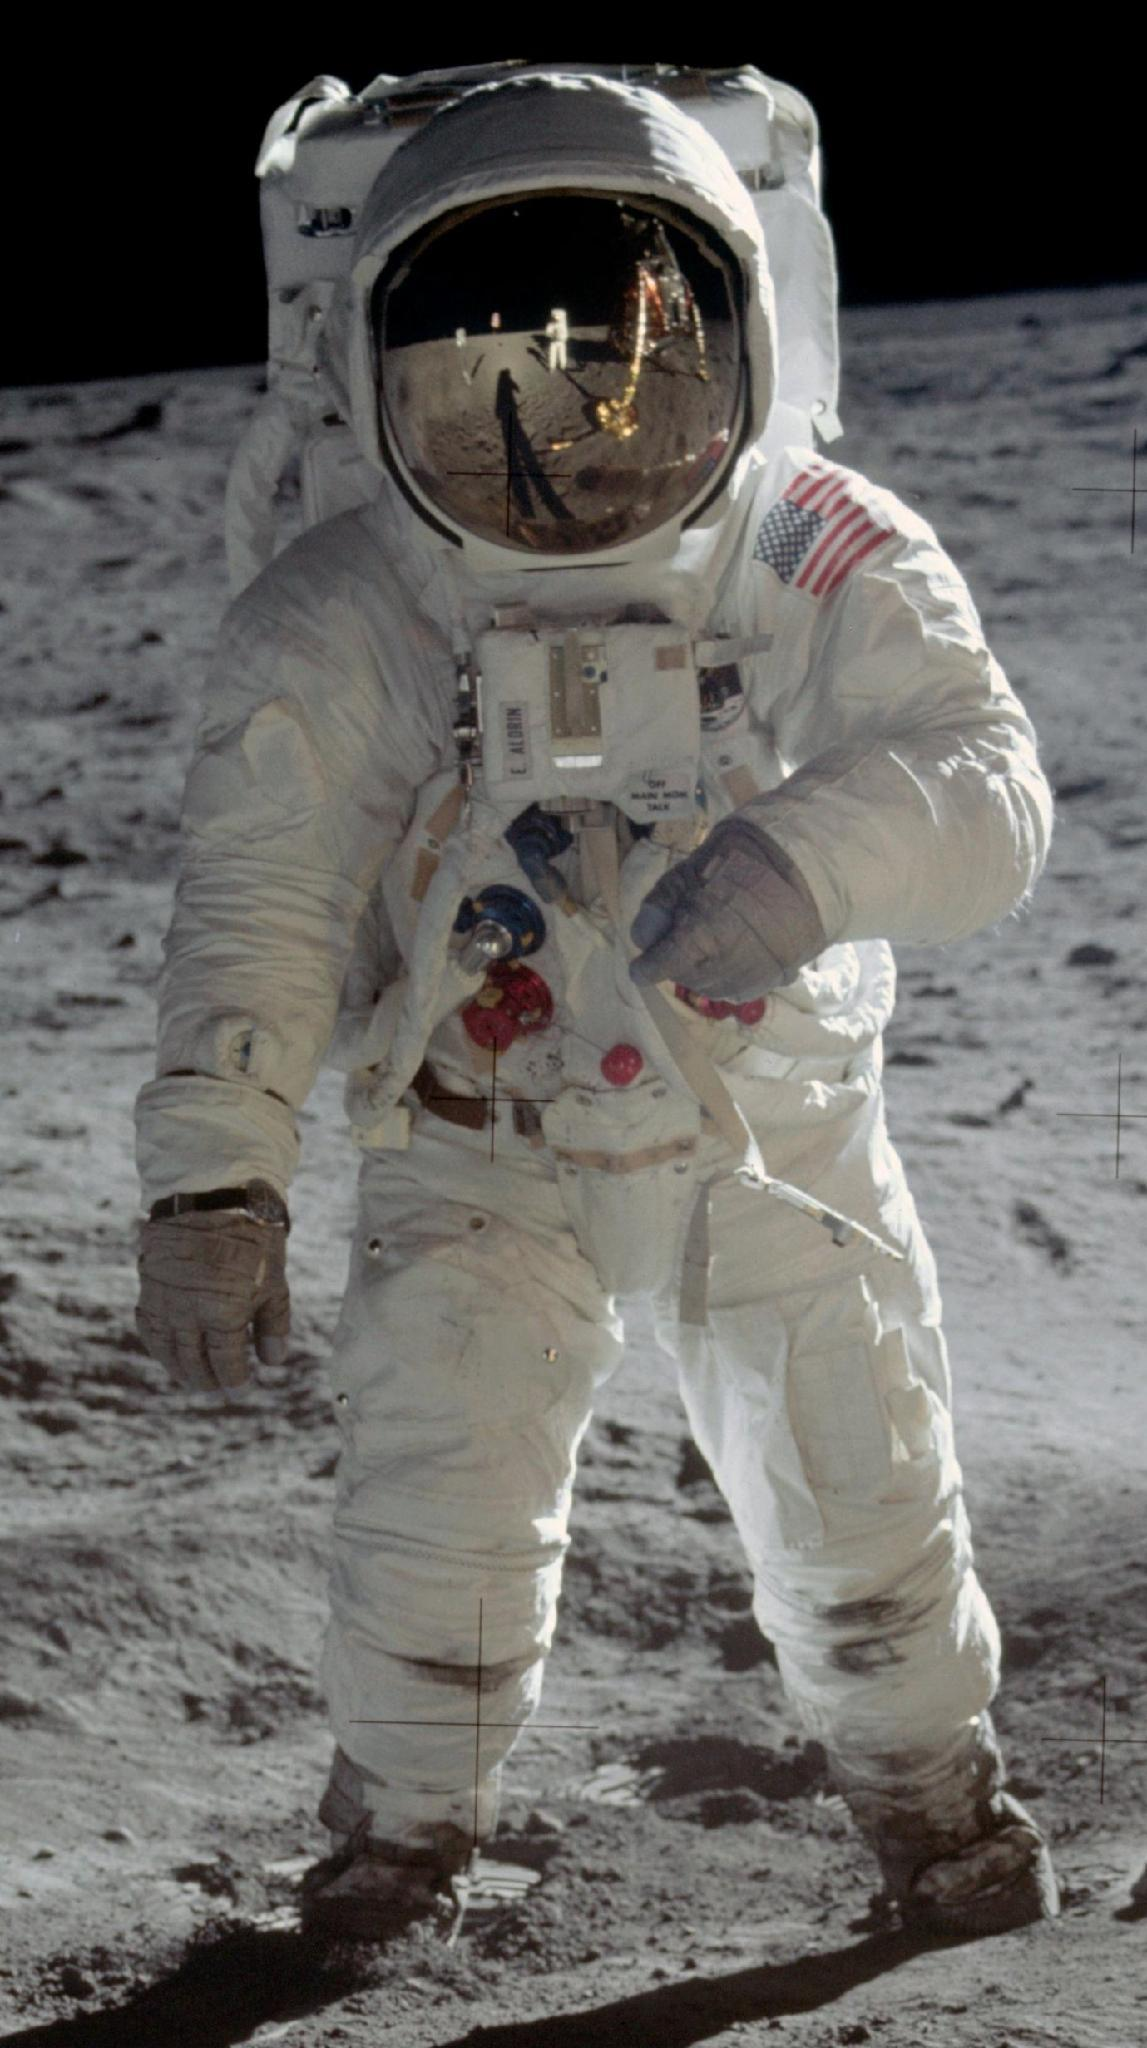 What would happen to your body in space without a spacesuit?